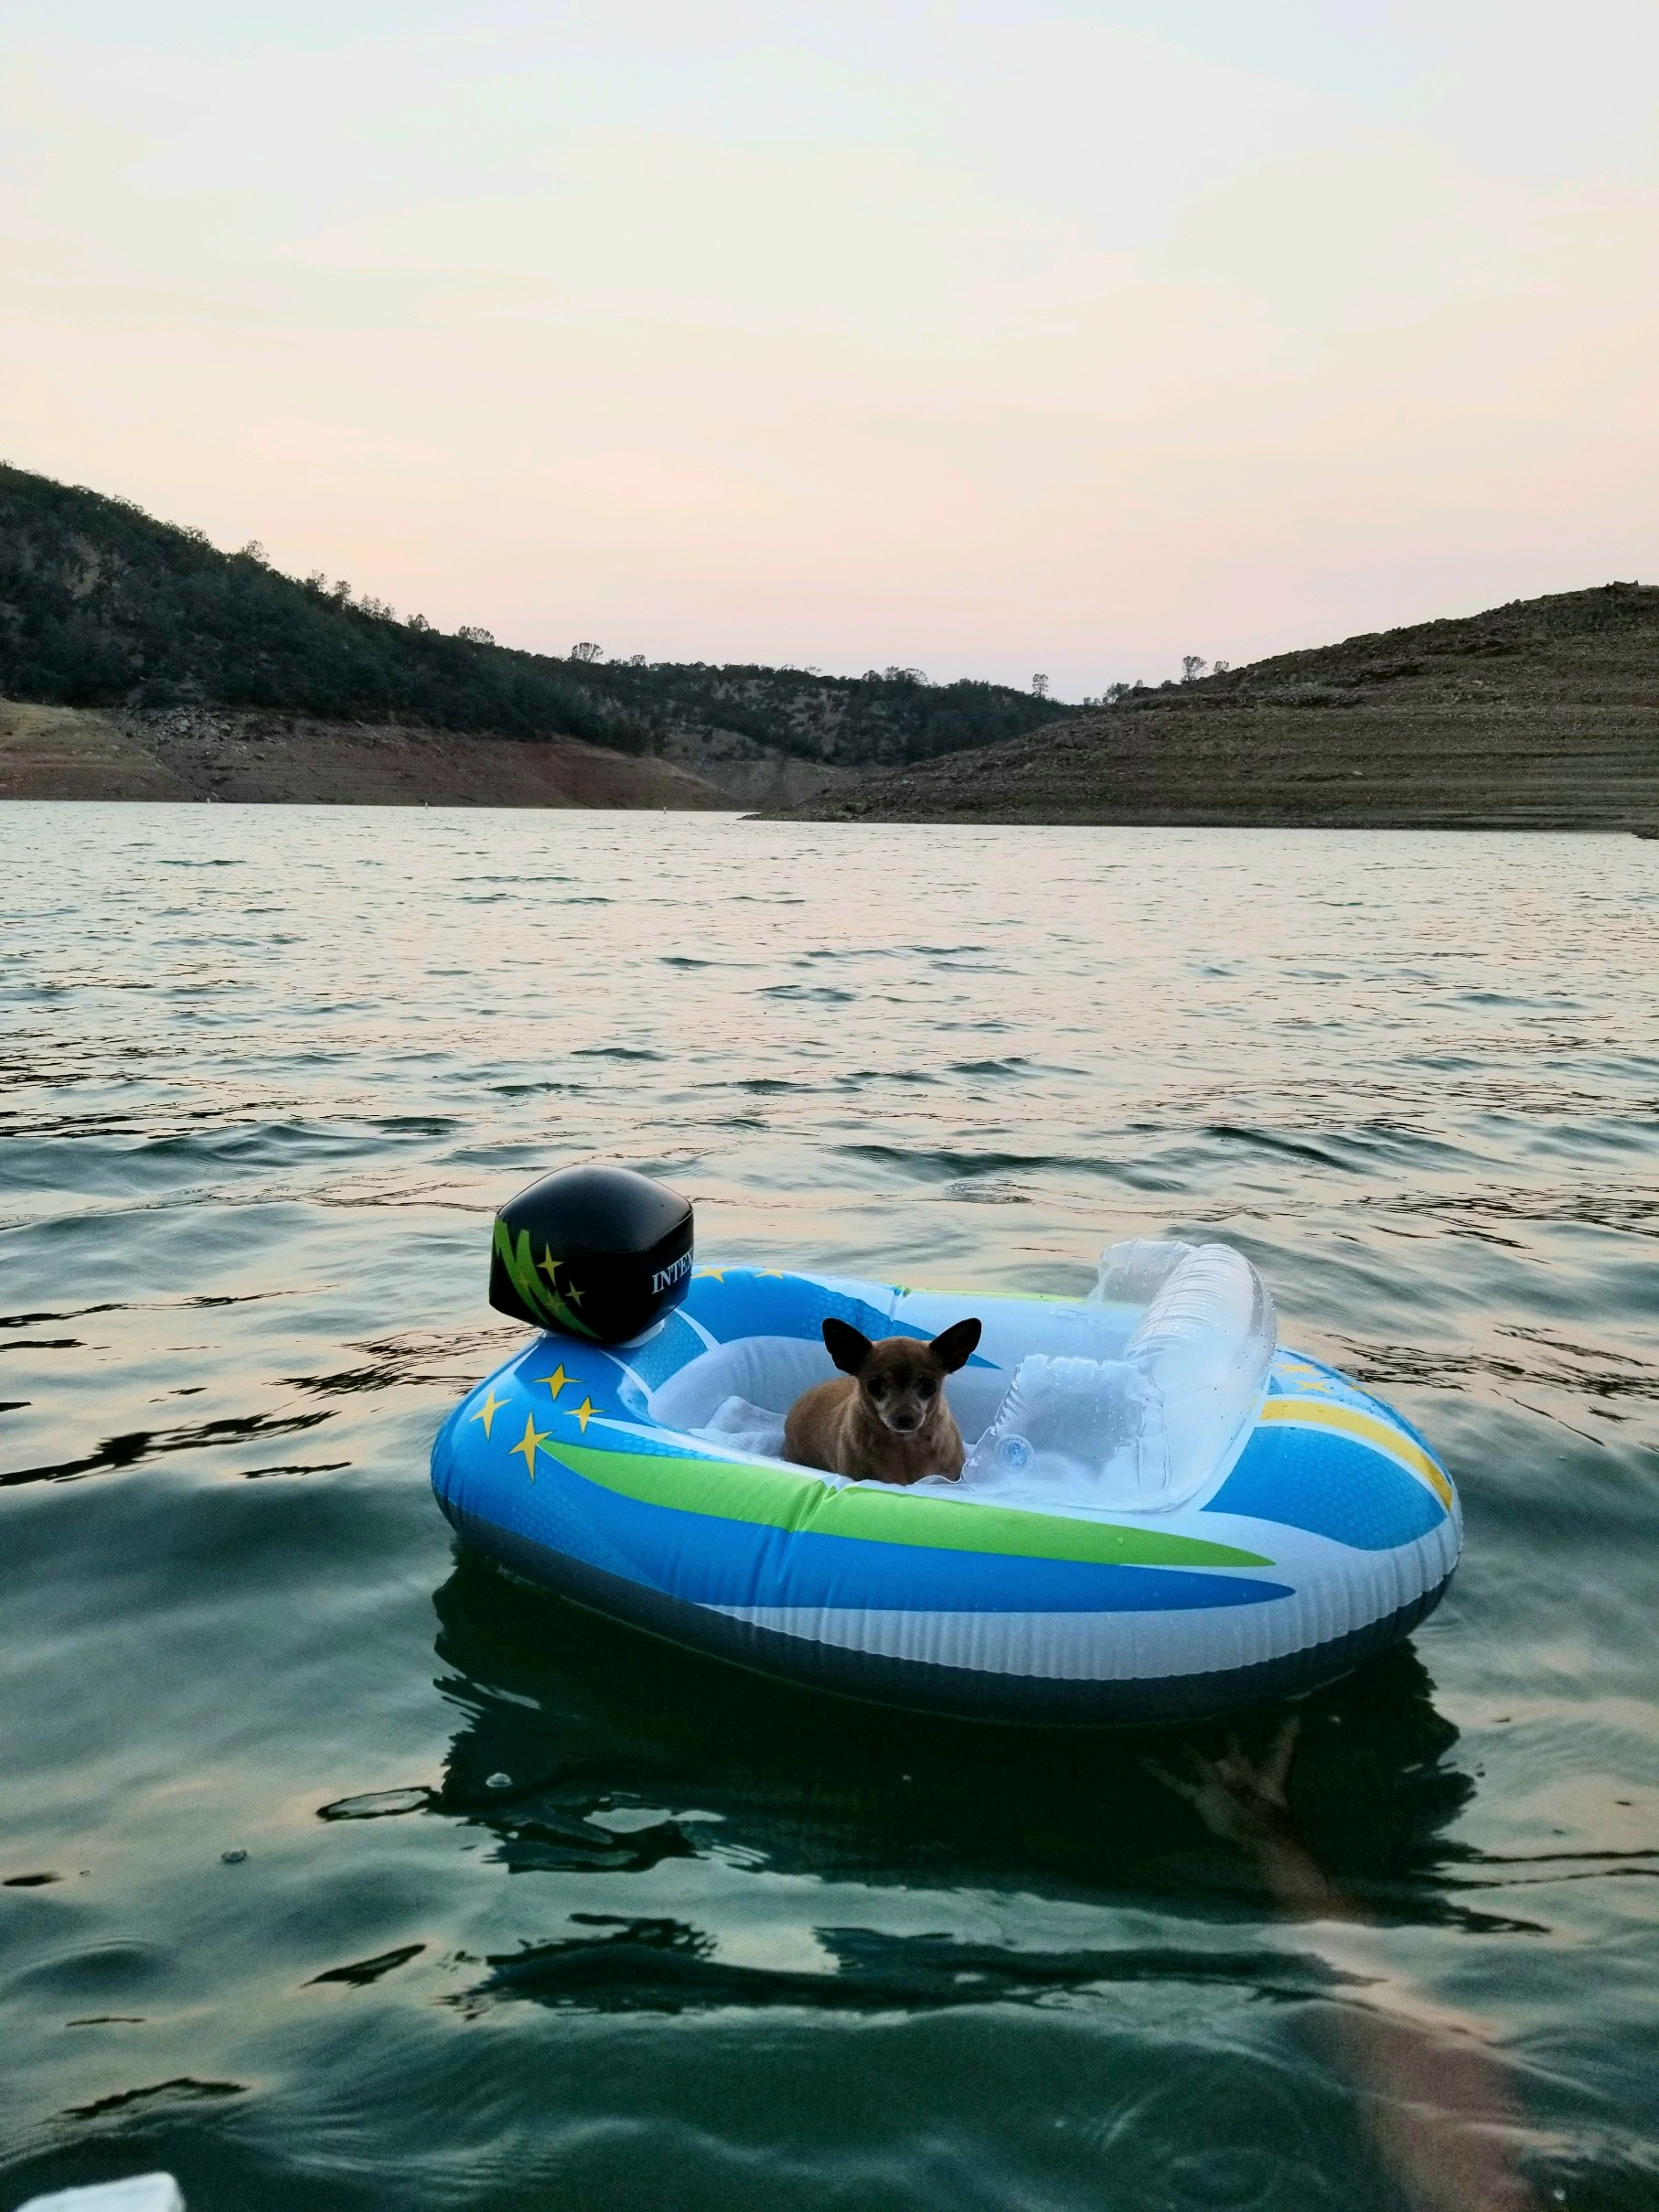 Dog sitting in an inflatable boat on a lake